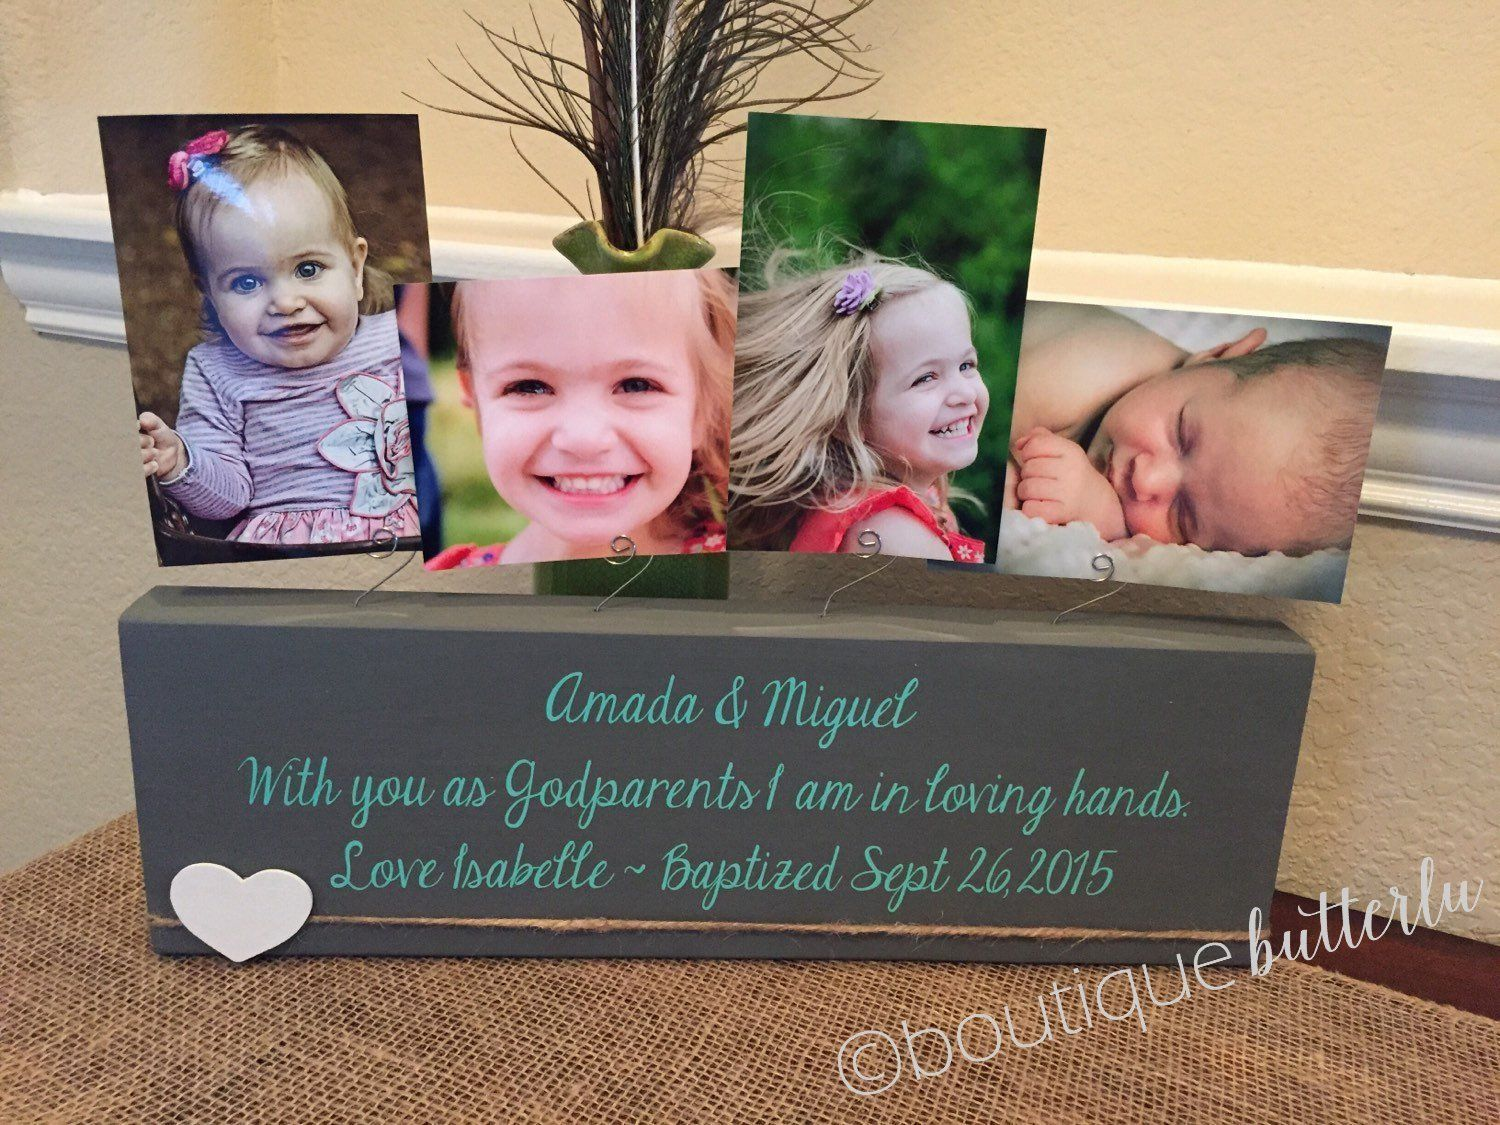 Gift for godparents personalized picture frame gift for baptism gift for godparents personalized picture frame gift for baptism birthday godmother godfather godchild custom made quote jeuxipadfo Image collections